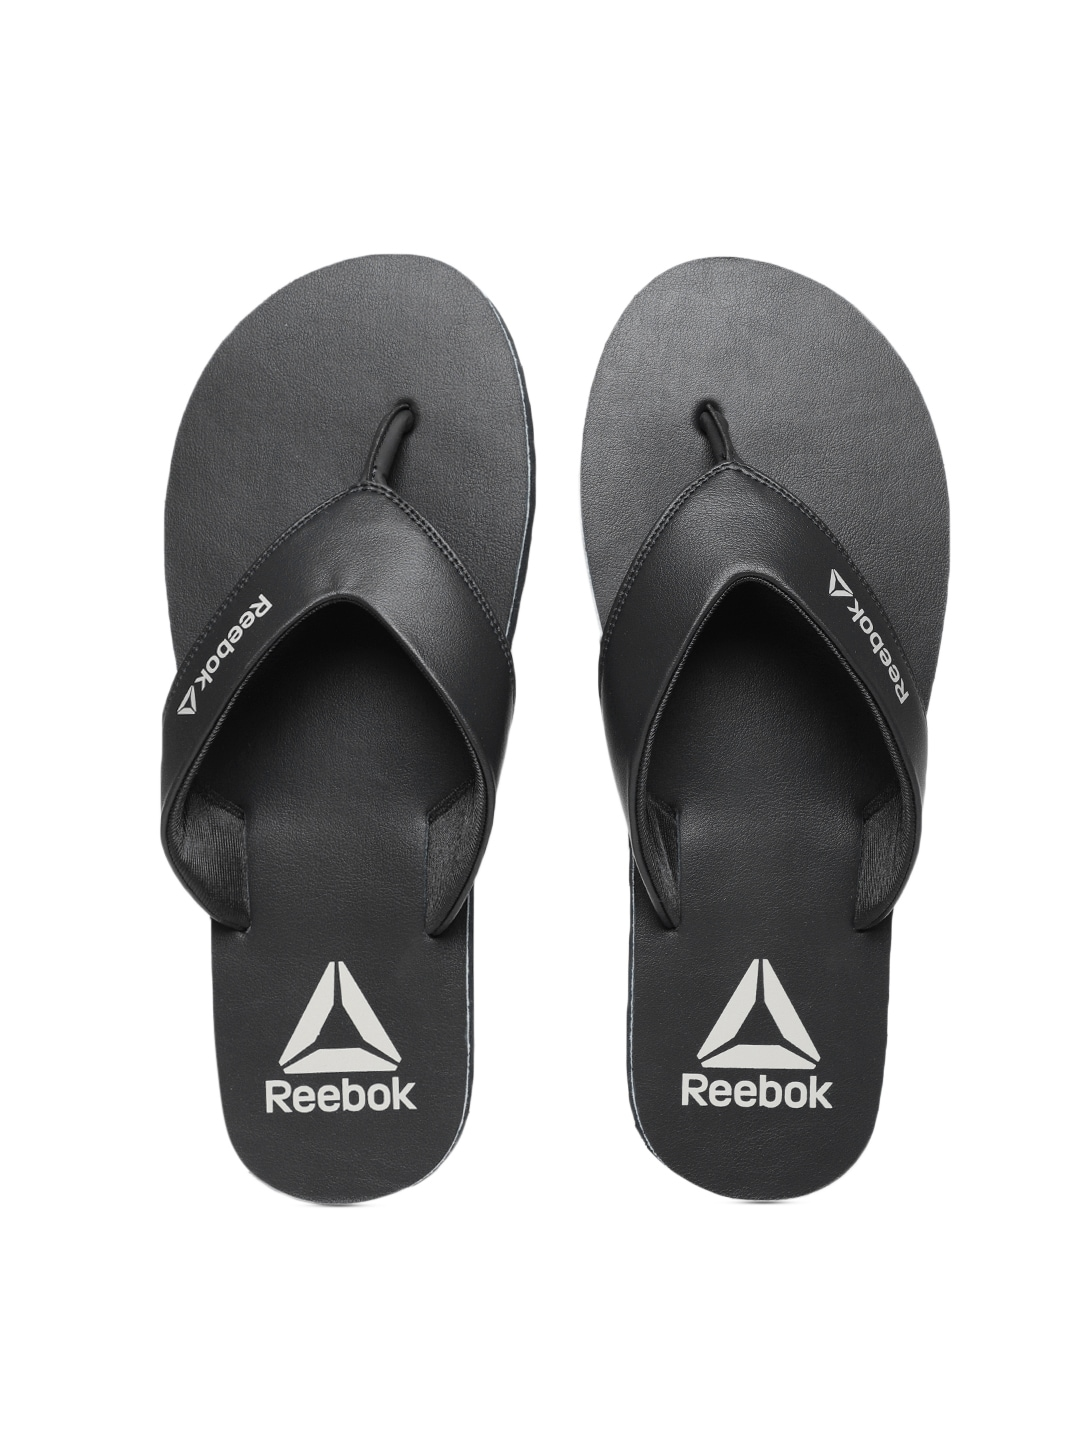 eaf078058 Men s Reebok Flip Flops - Buy Reebok Flip Flops for Men Online in India